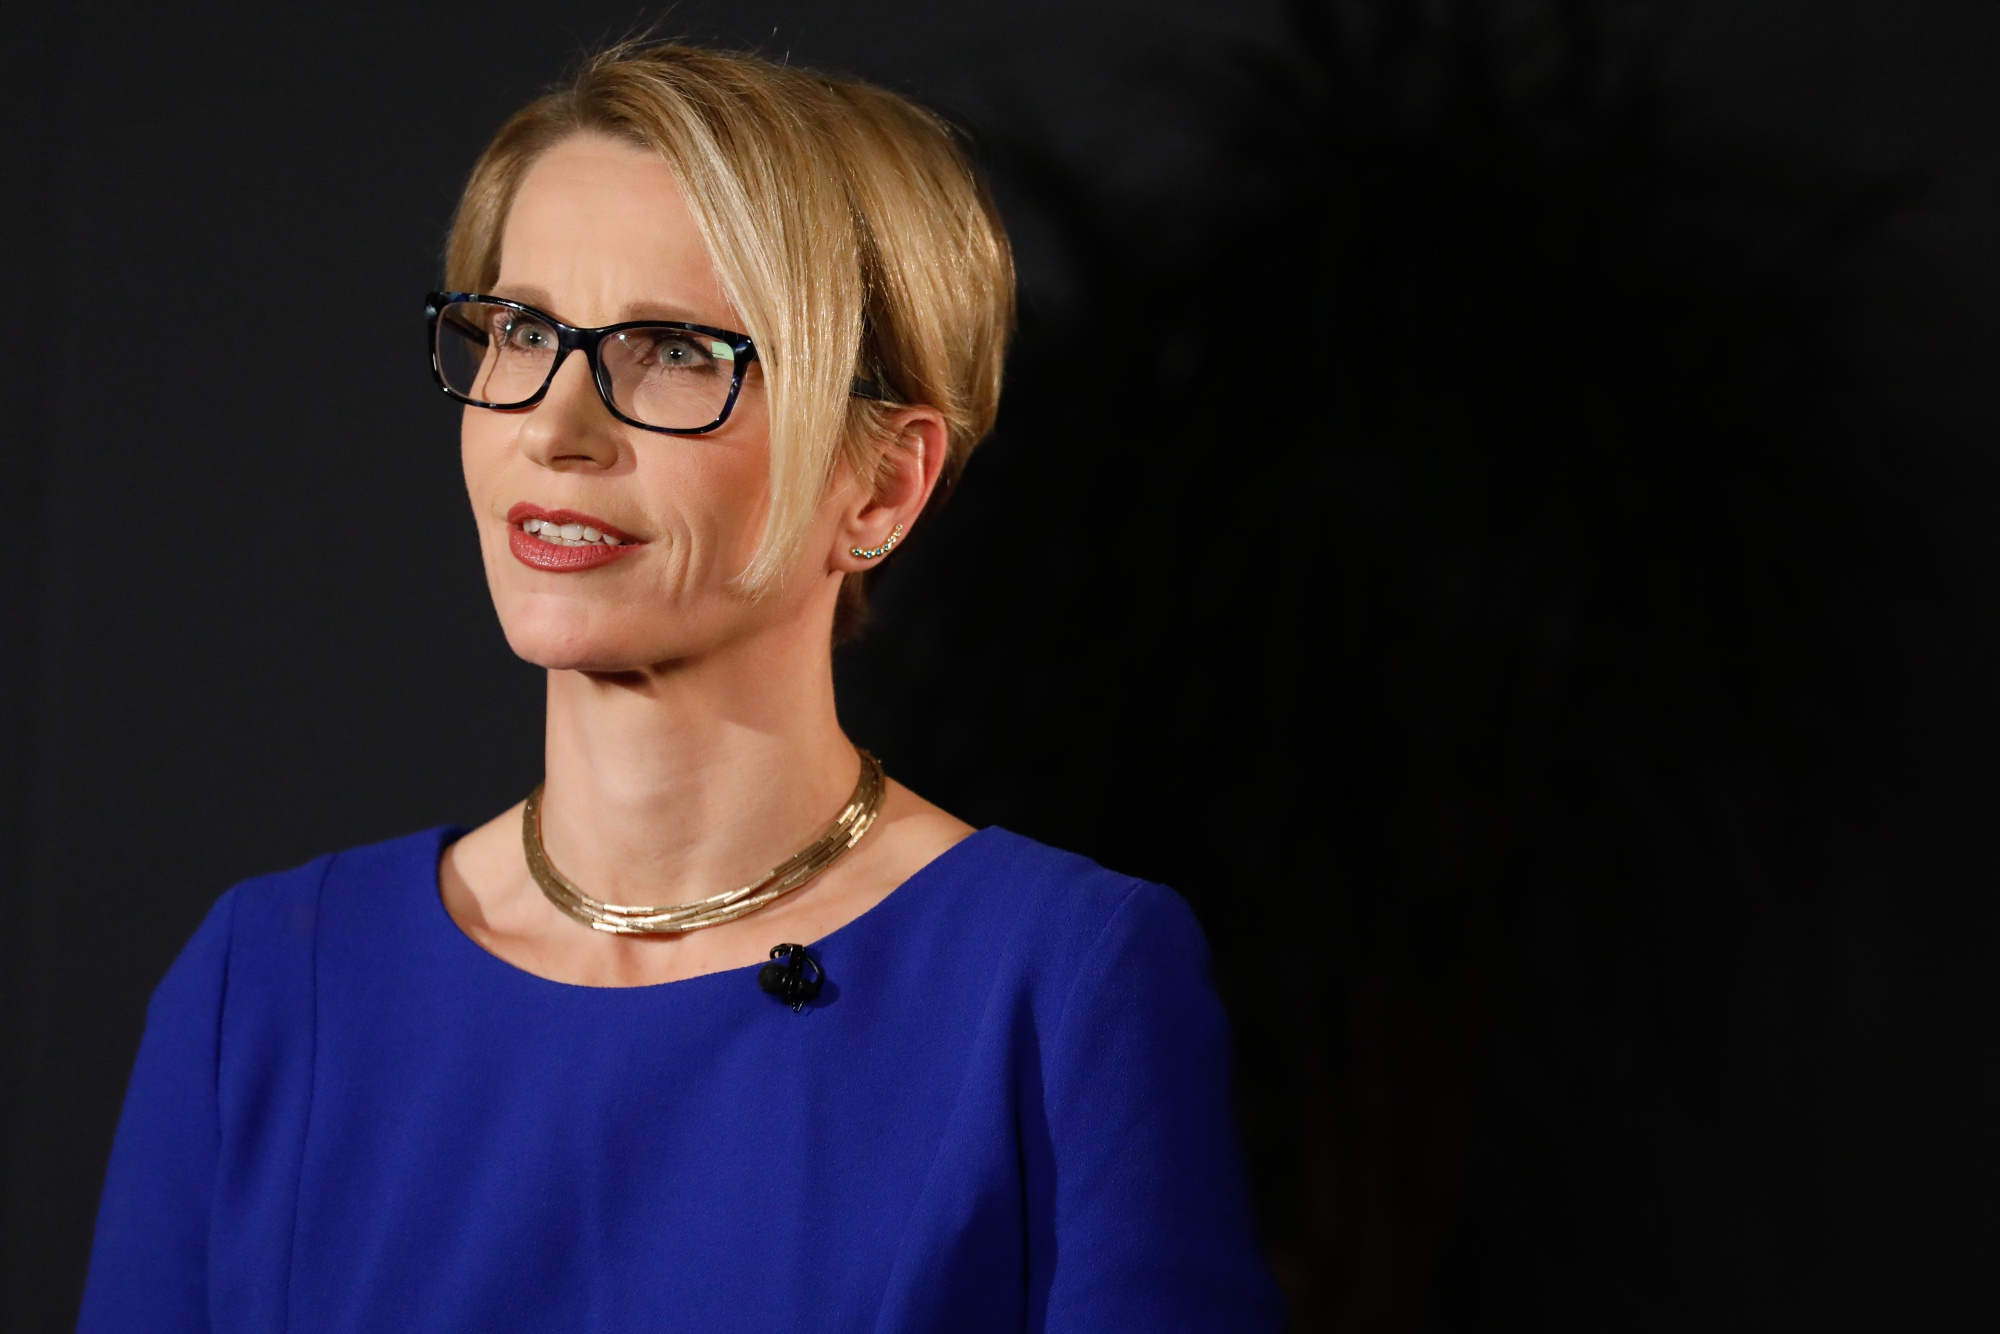 Glaxo CEO Emma Walmsley Interview After Pfizer Deal Paves Way For Pharma Giant Breakup